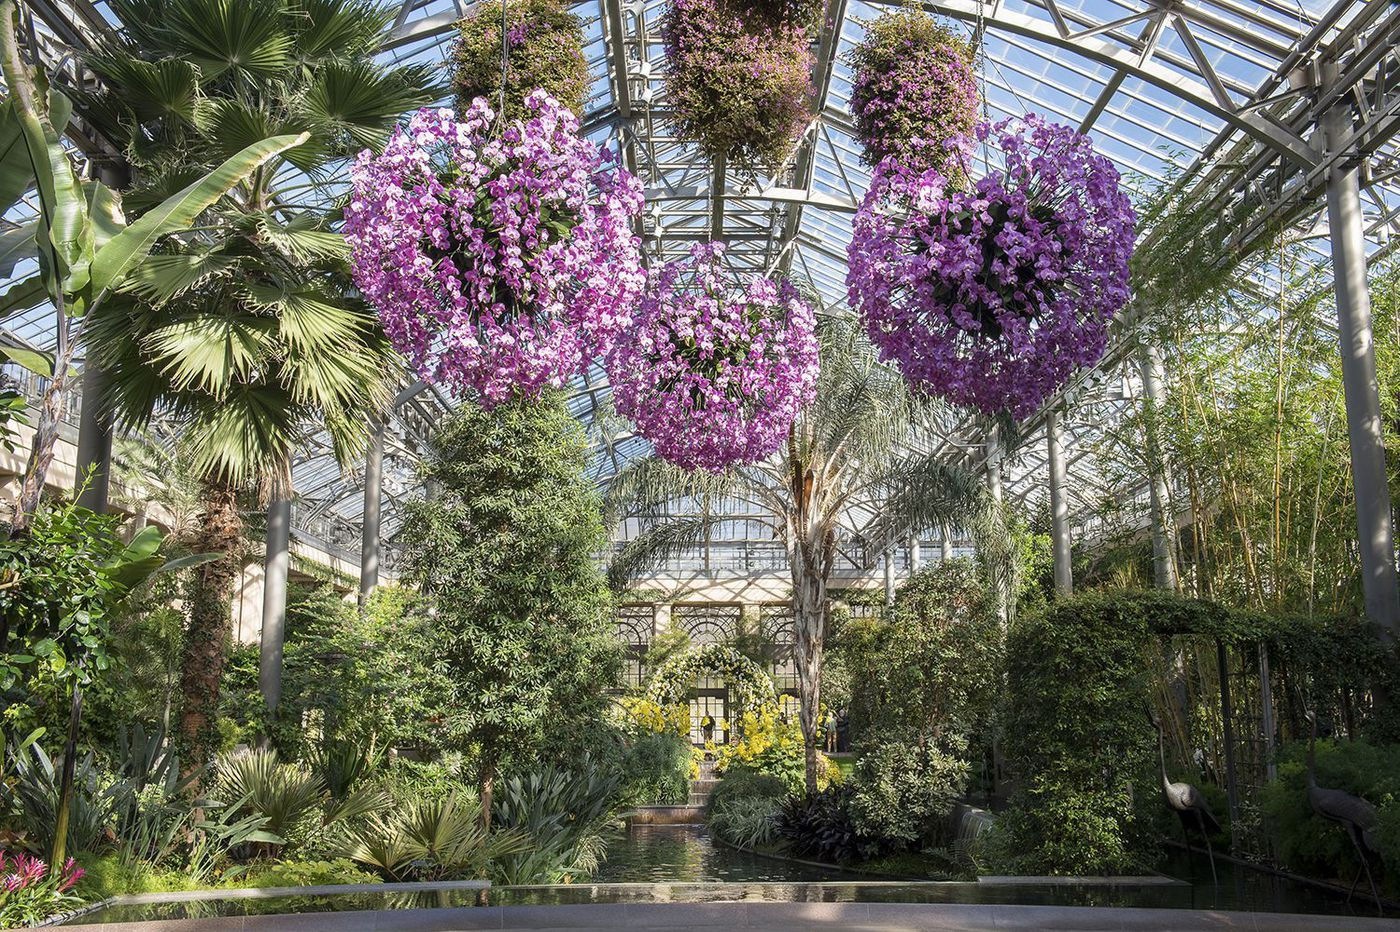 What to do in Philly this week (Jan. 17-23): Do good for Martin Luther King Jr. Day, dance like Queen Bey, revel in the orchids at Longwood Gardens, and more